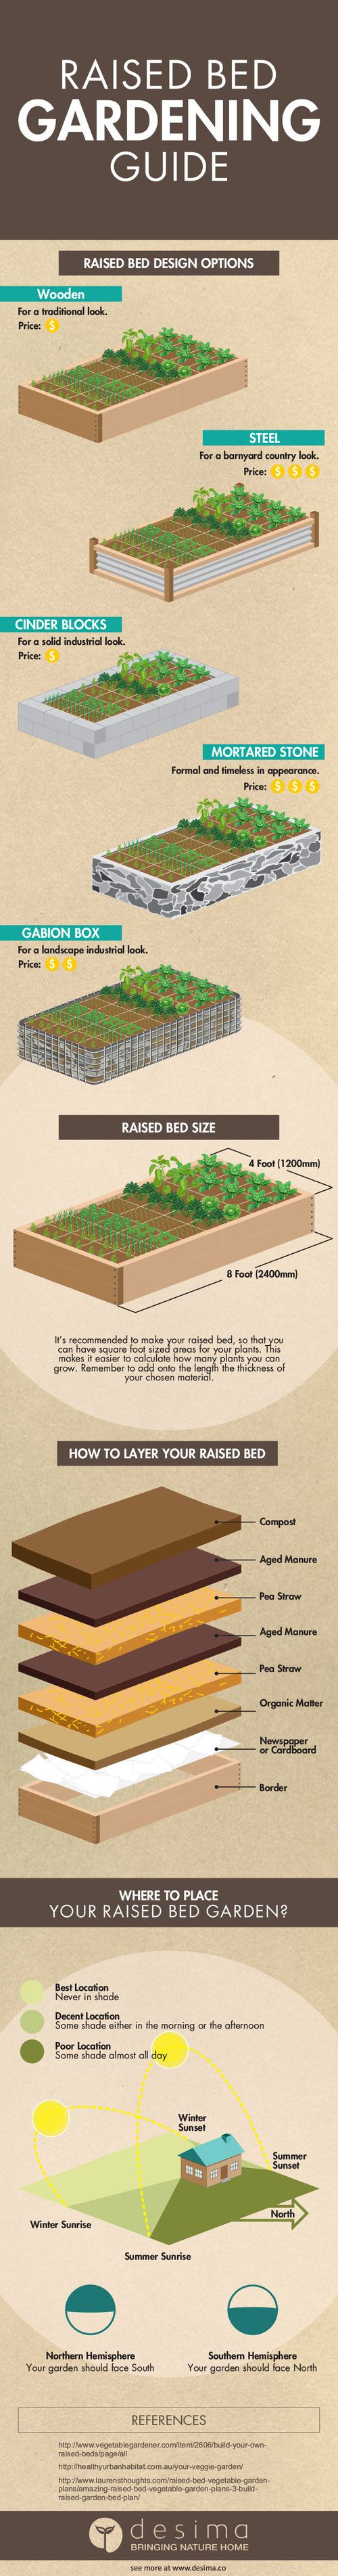 Follow all these tips to make growing healthy and fruitful tomato plants  easy.    1.Plant your tomato plant in a place with 10 hours of direct sunlight.  2.Have enough space between plants for air flow.  3.Soak the base of your tomato plants once a week or more during those hot  summer